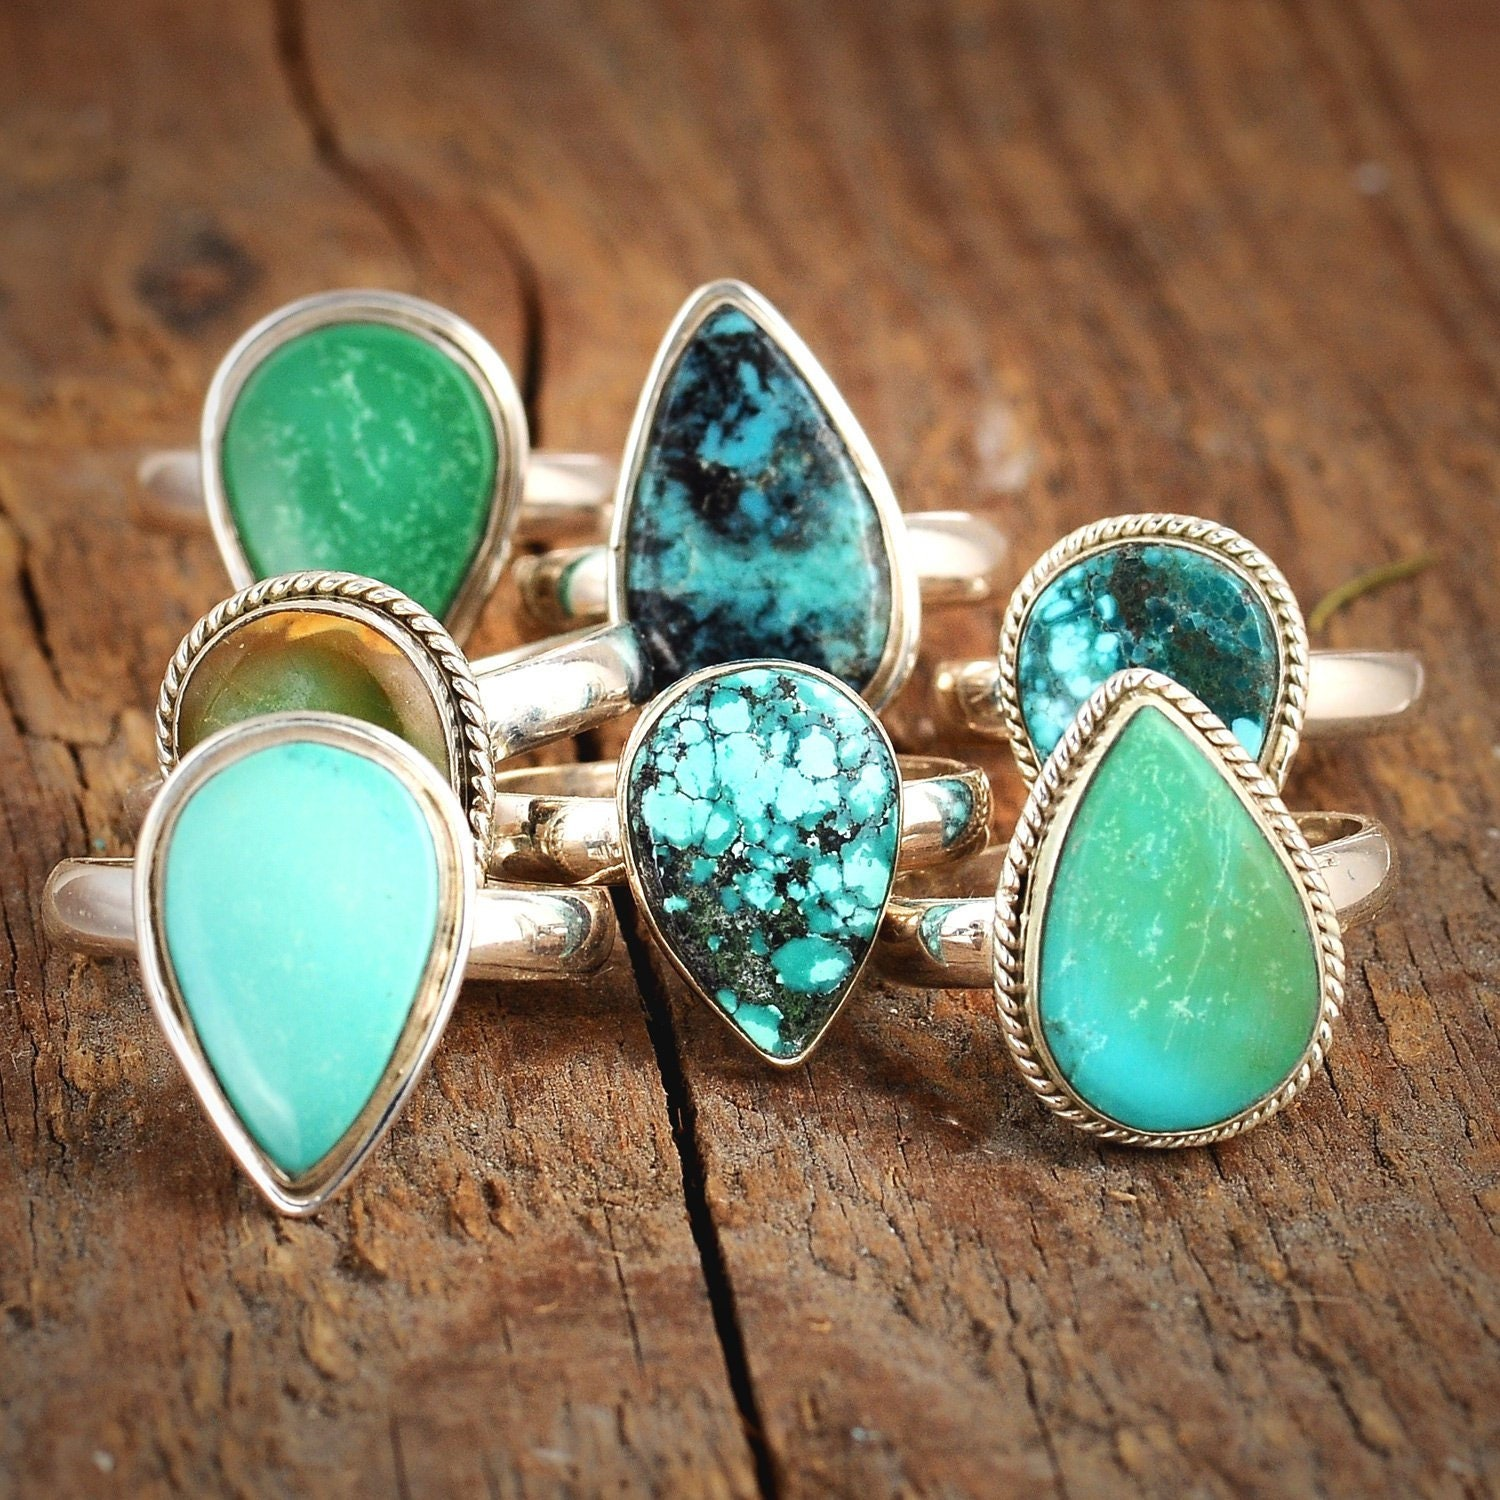 Beautiful Western Natural Stone Turquoise Adjustable Ring Turquoise RingGifts for HerAccessoriesJewelry